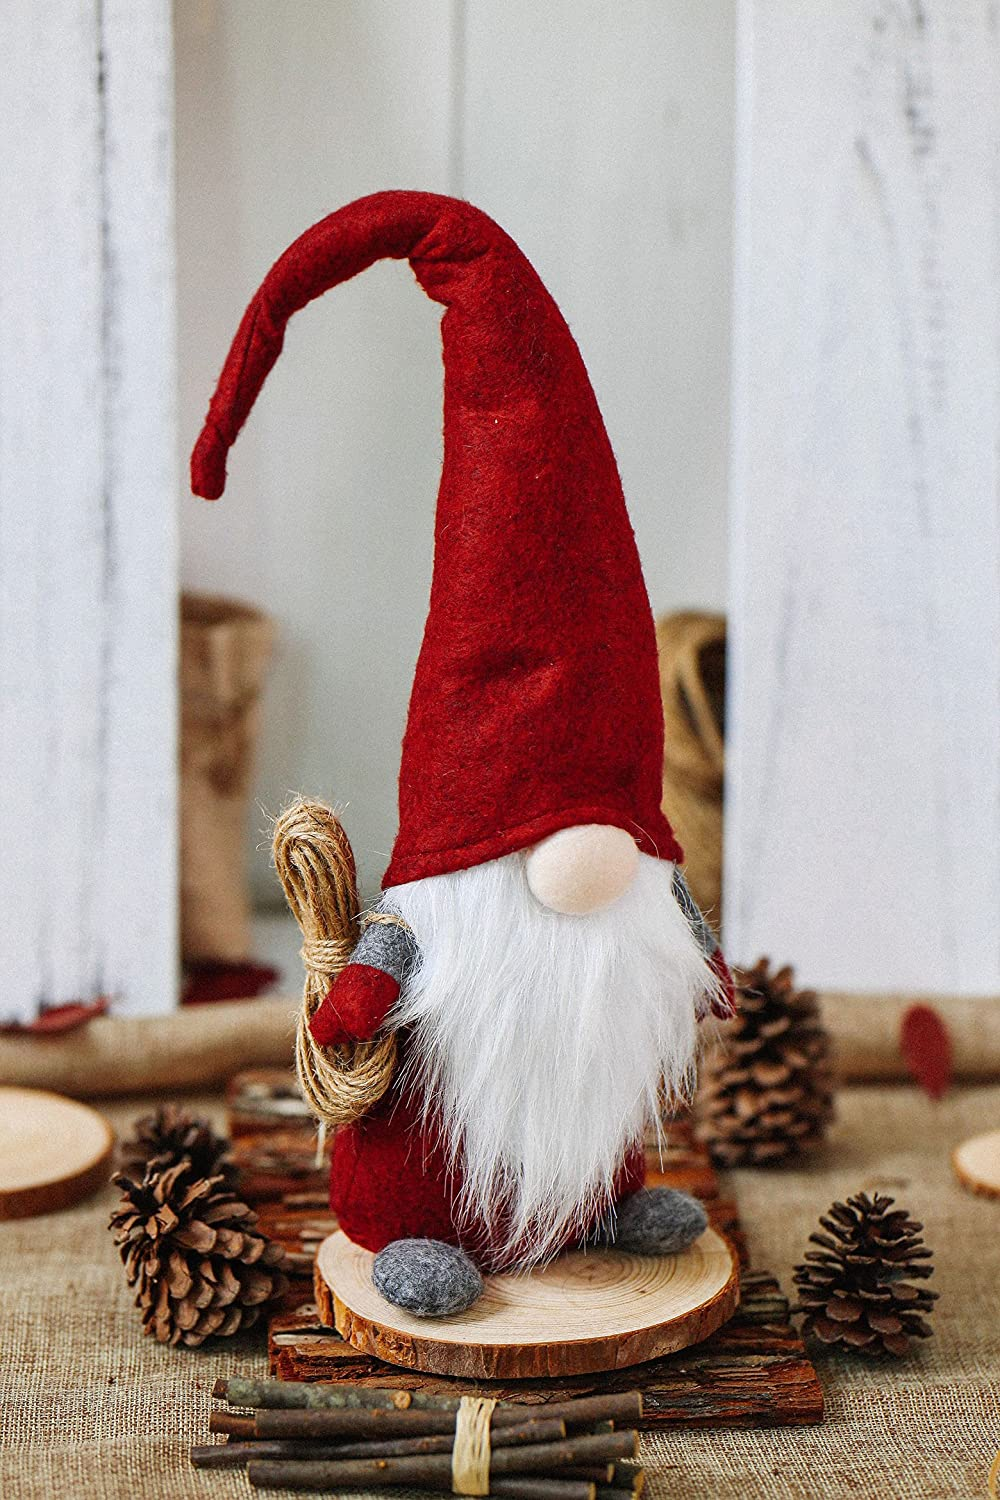 amazoncom itomte handmade swedish tomte santa scandinavian gnome plush figurines gnome elf ornaments home christmas decoration thanksgiving day